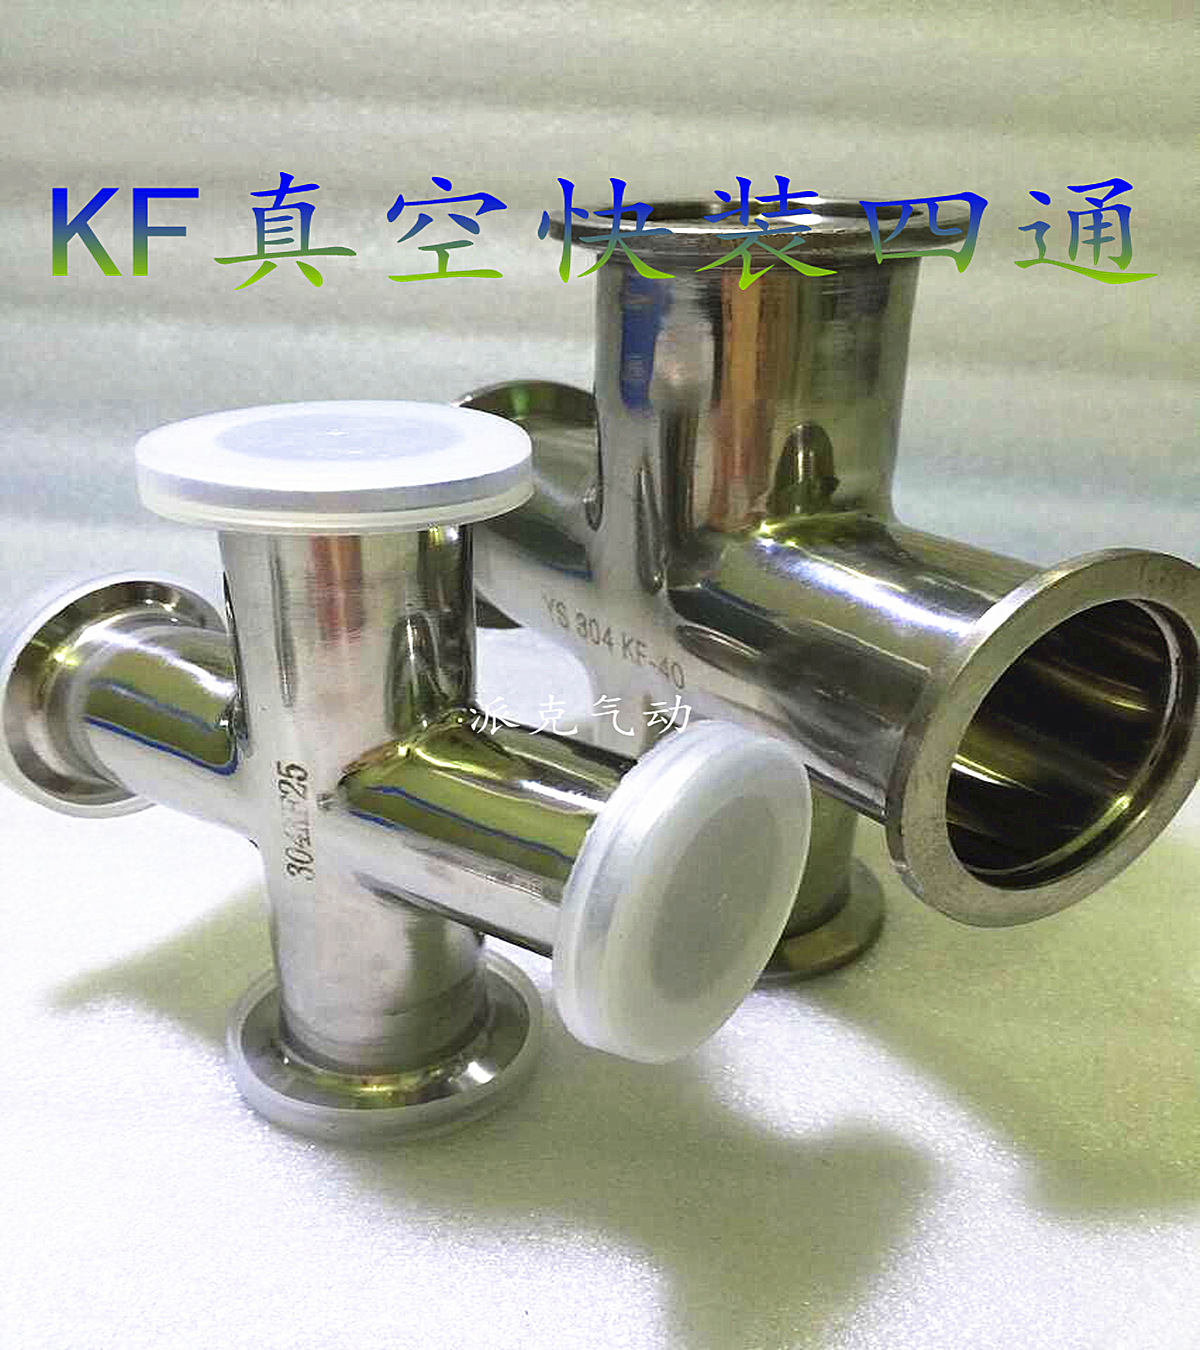 Usd 1895 Stainless Steel Kf Vacuum Quick Fit Four Way Upvc Electrical Plastic Flexible Wiring Conduit Pipe China Tee Blind Plate